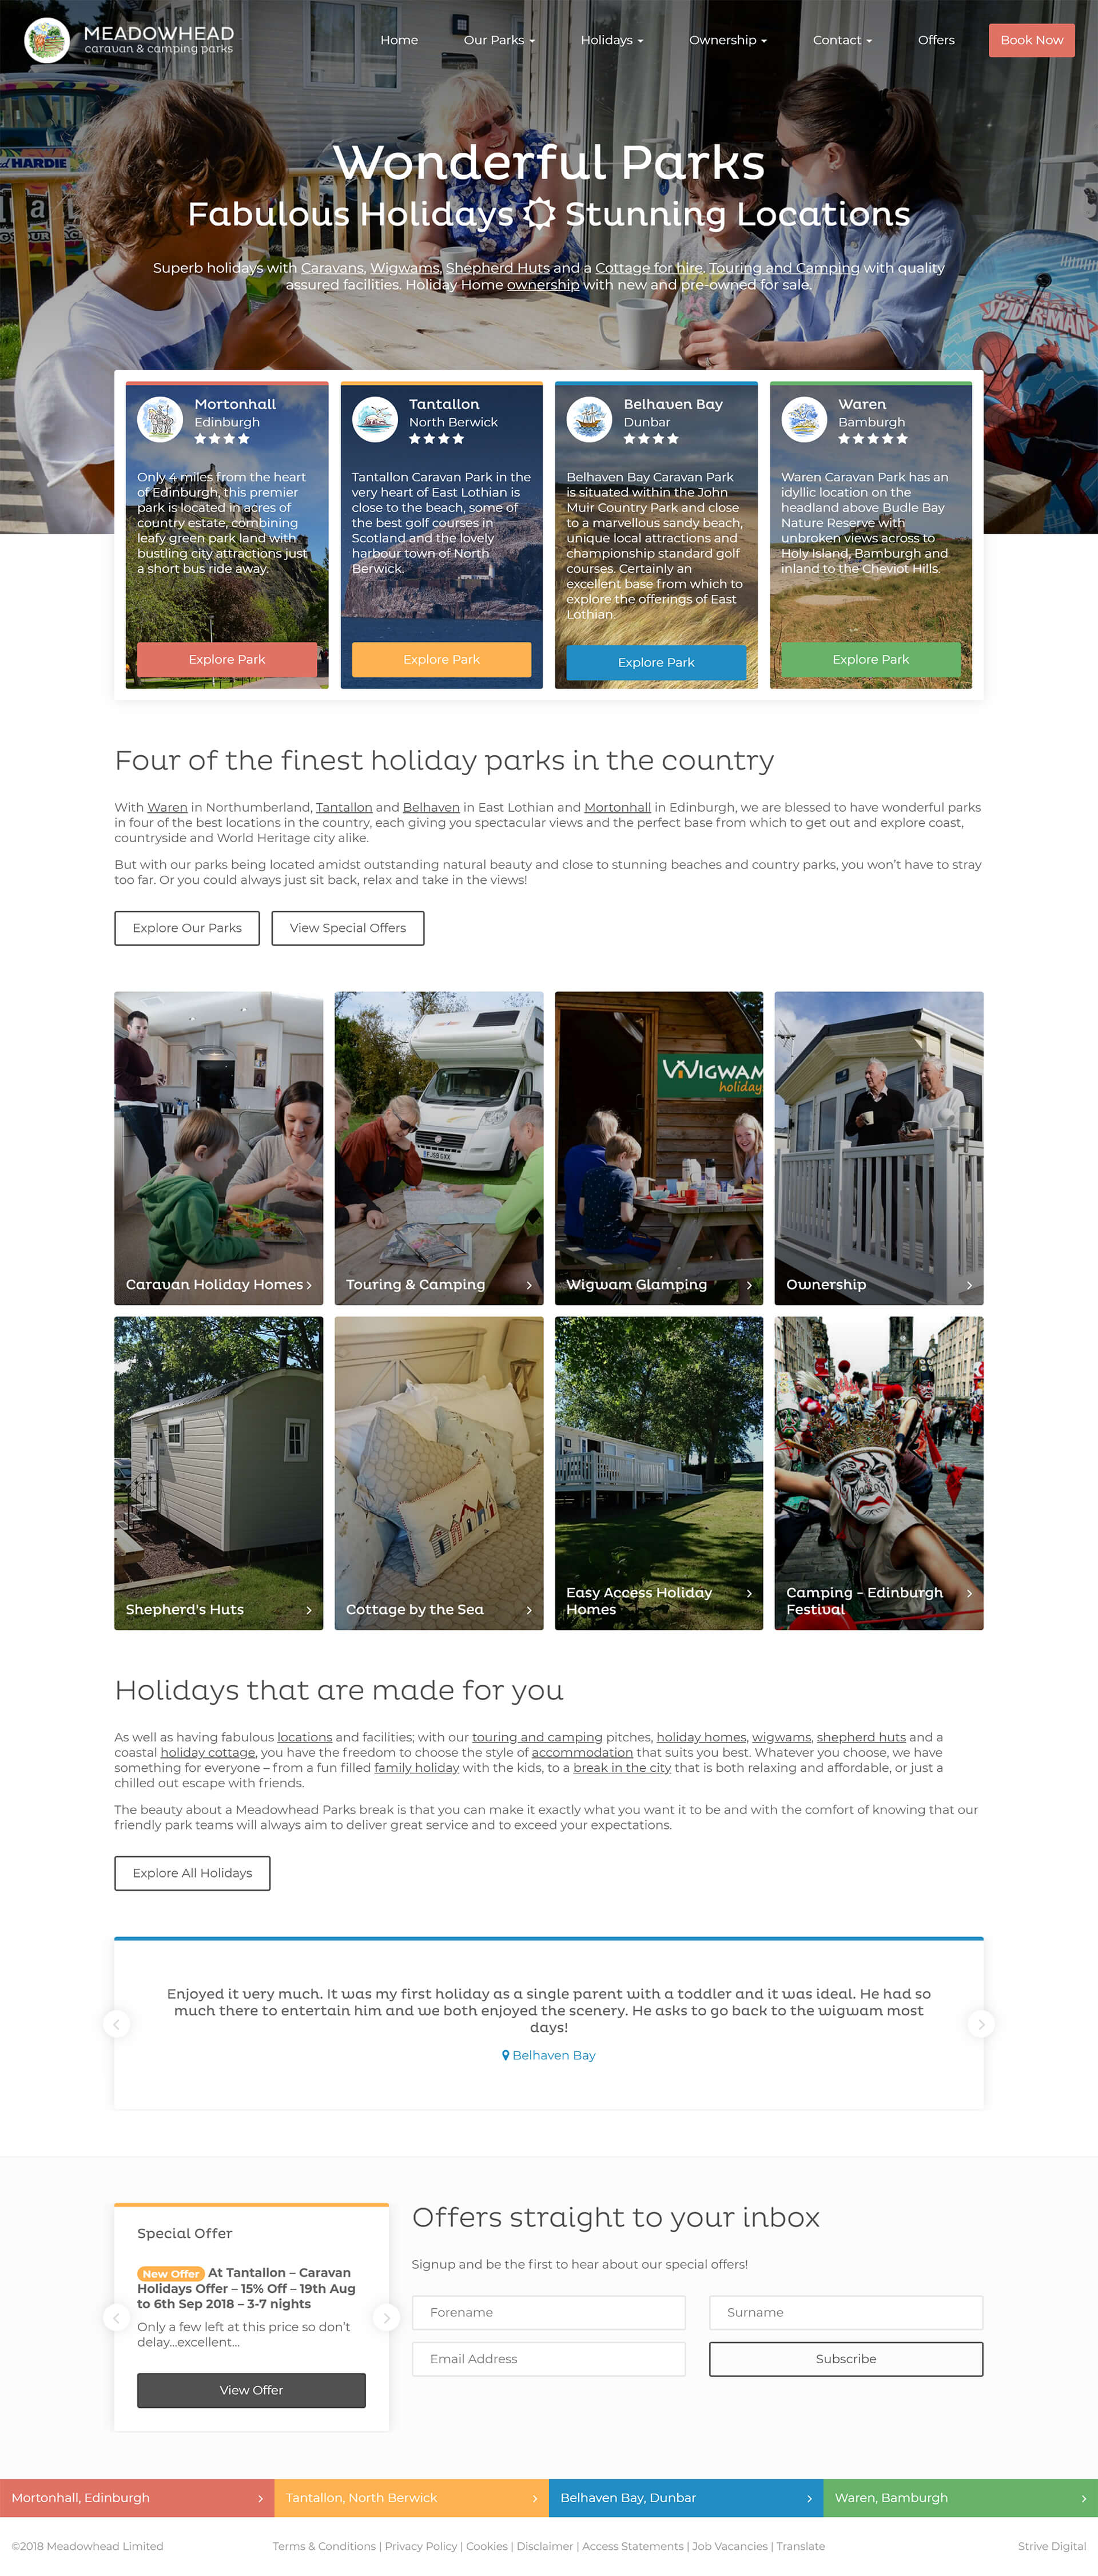 Screenshot of the home page of the Meadowhead Parks website.